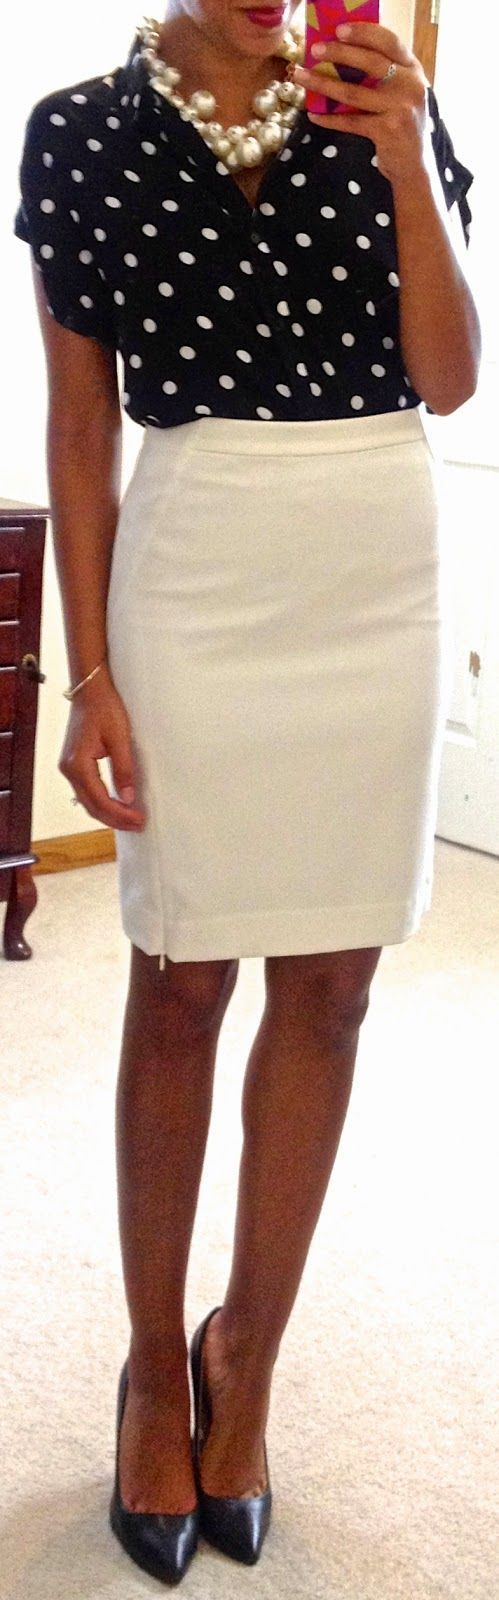 Like this with a shorter skirt